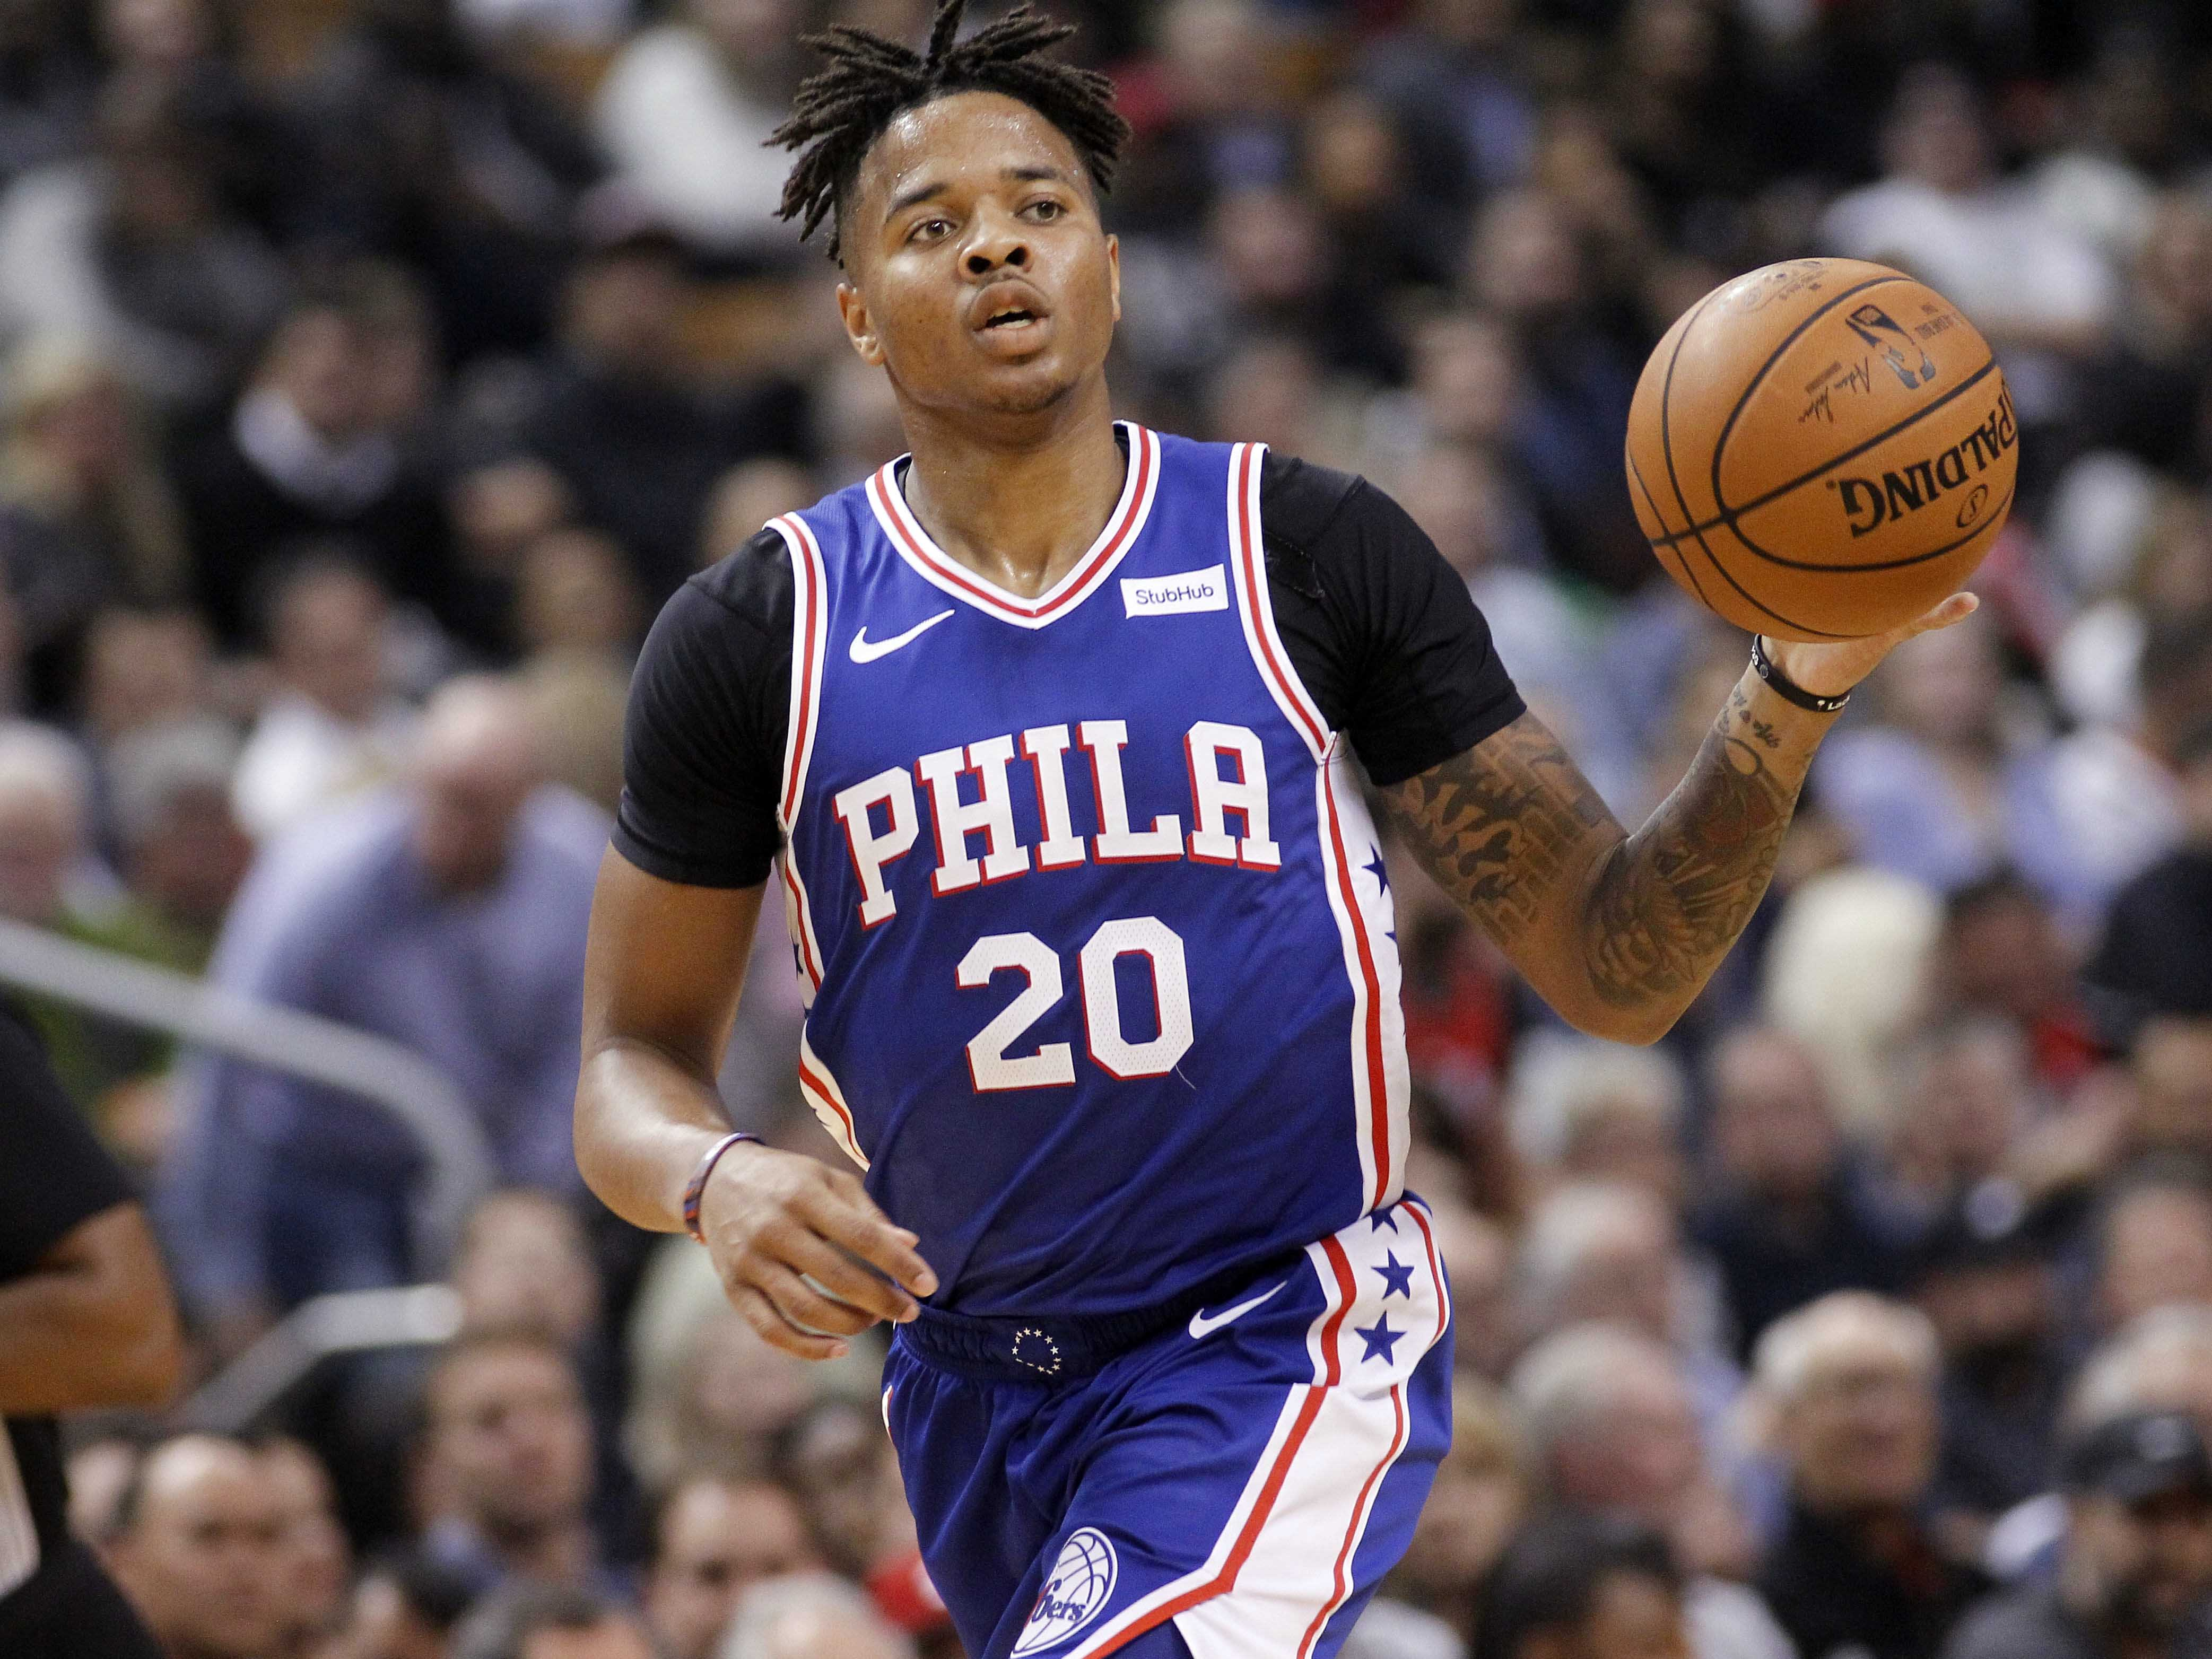 Markelle Fultz is excited to move on from the Sixers, get a fresh start